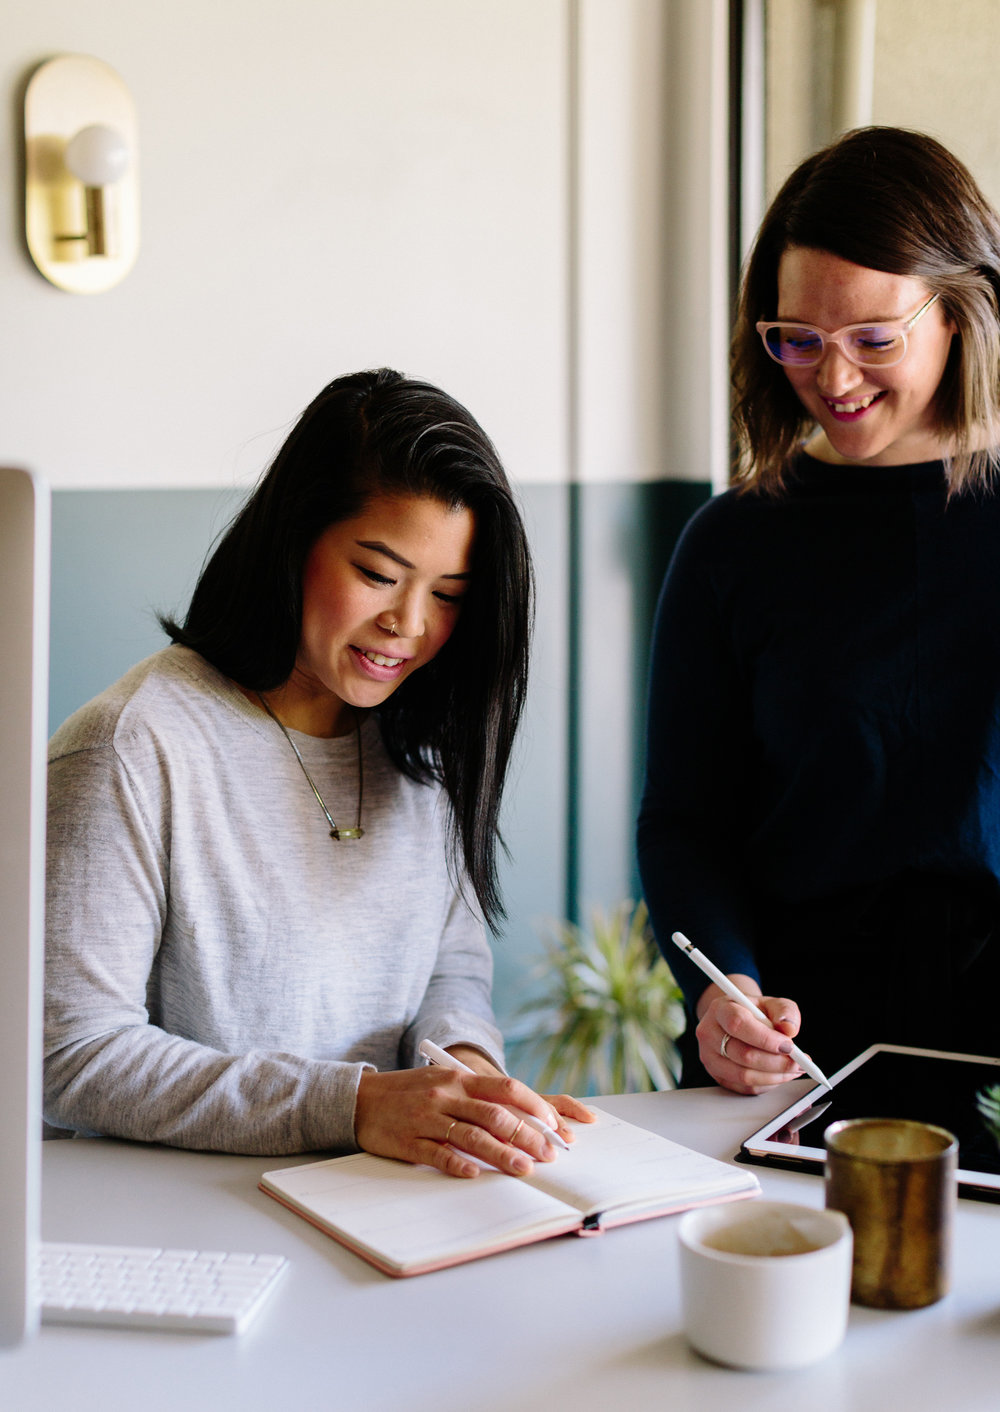 Daphne and Lucy from Salt Design Co. sat at a desk with a notebook and ipad, both smiling